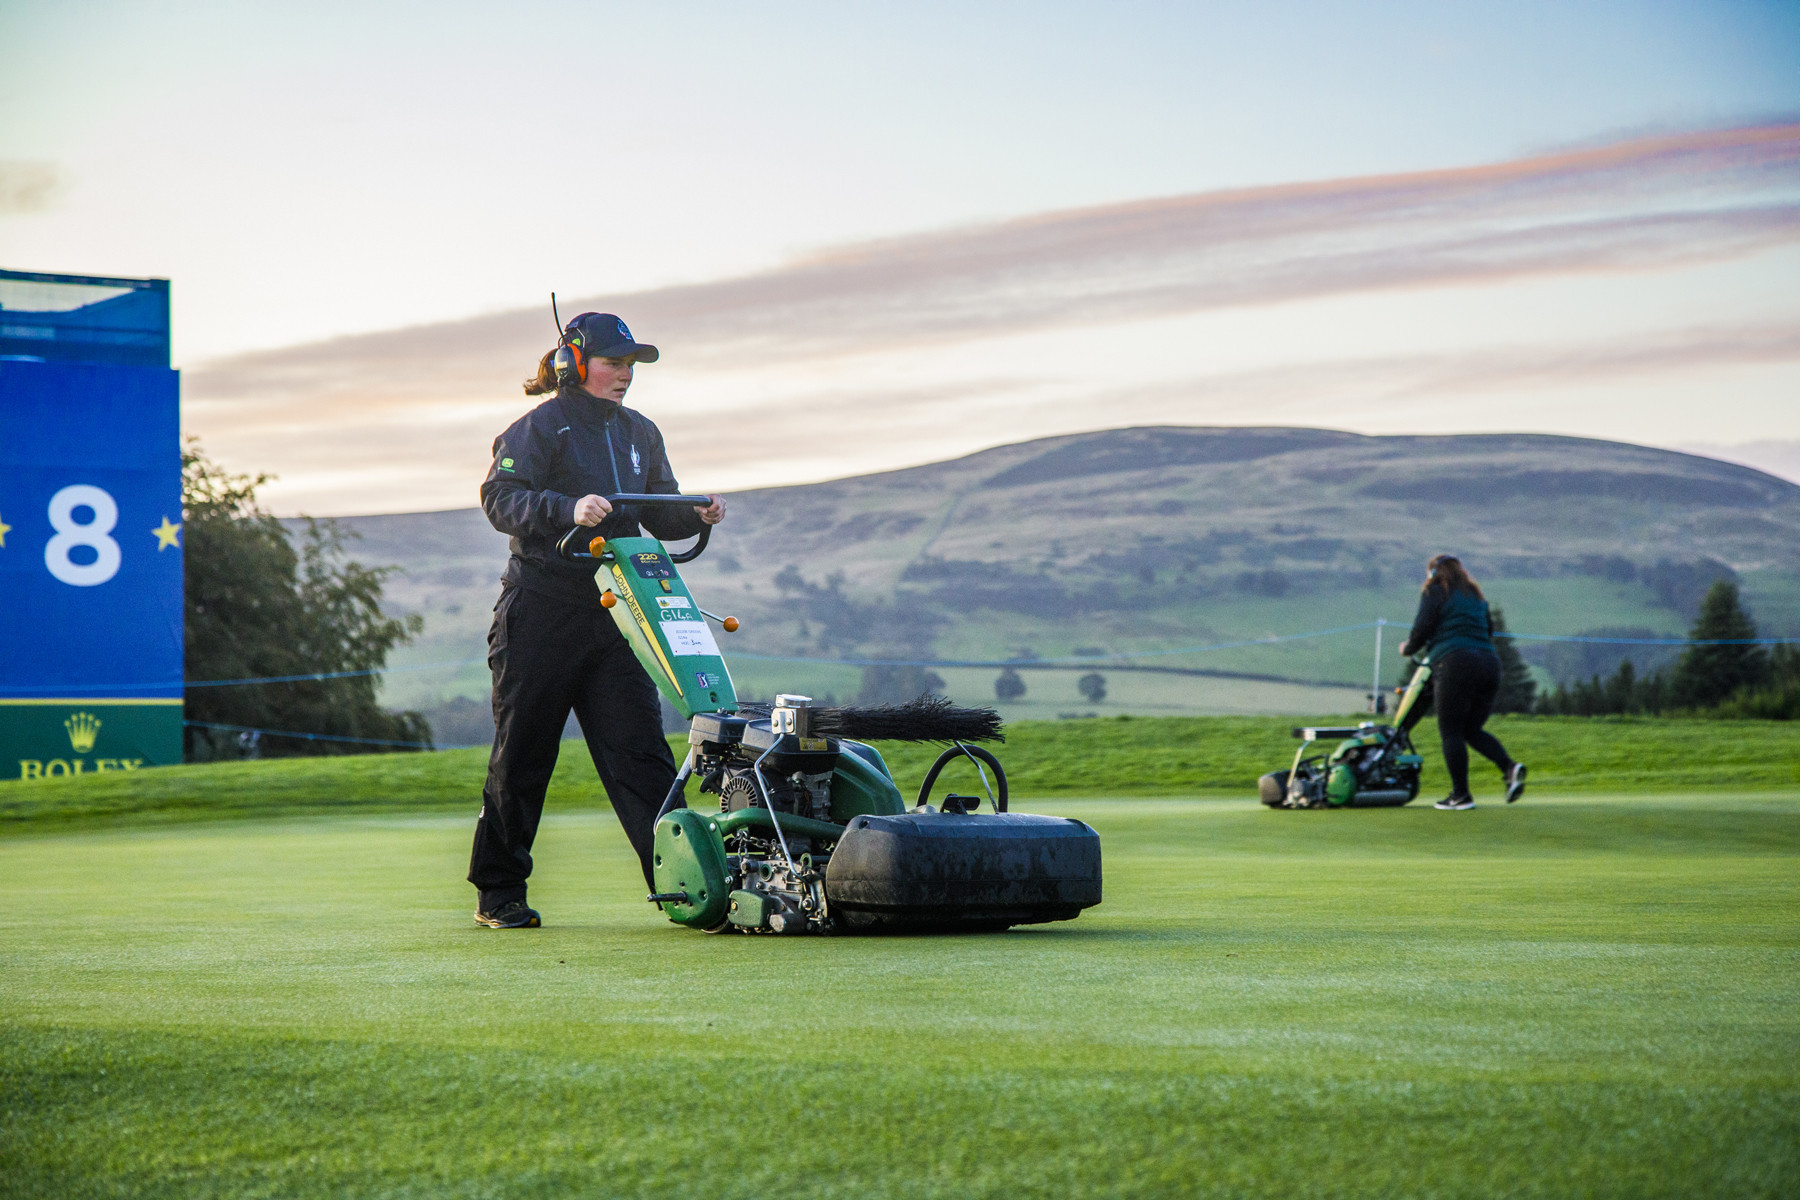 LPGA and LET announce long-term agreement with John Deere